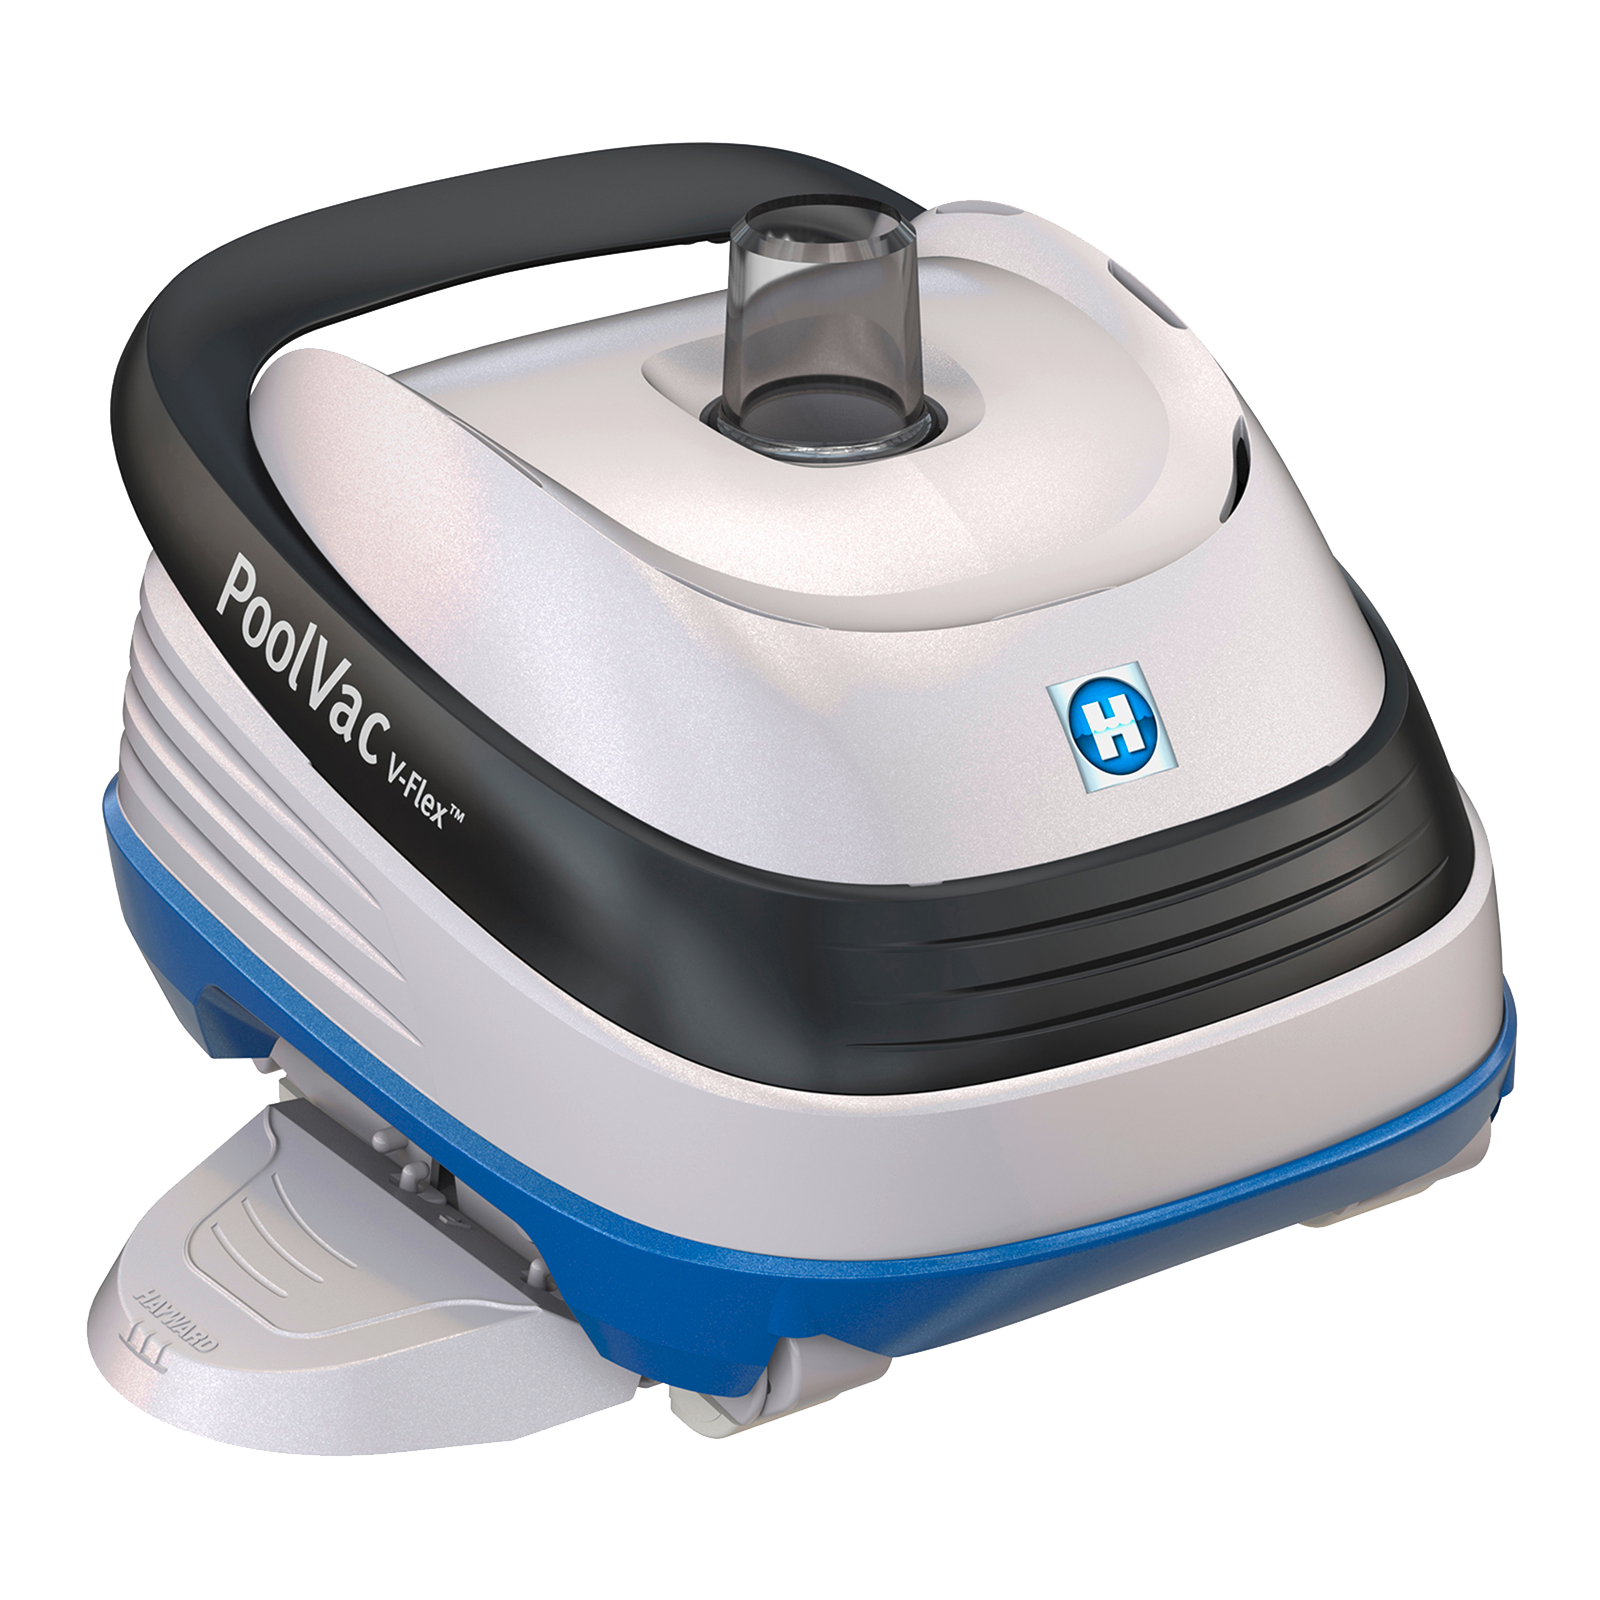 Robot piscine PoolVac V-FLEX™